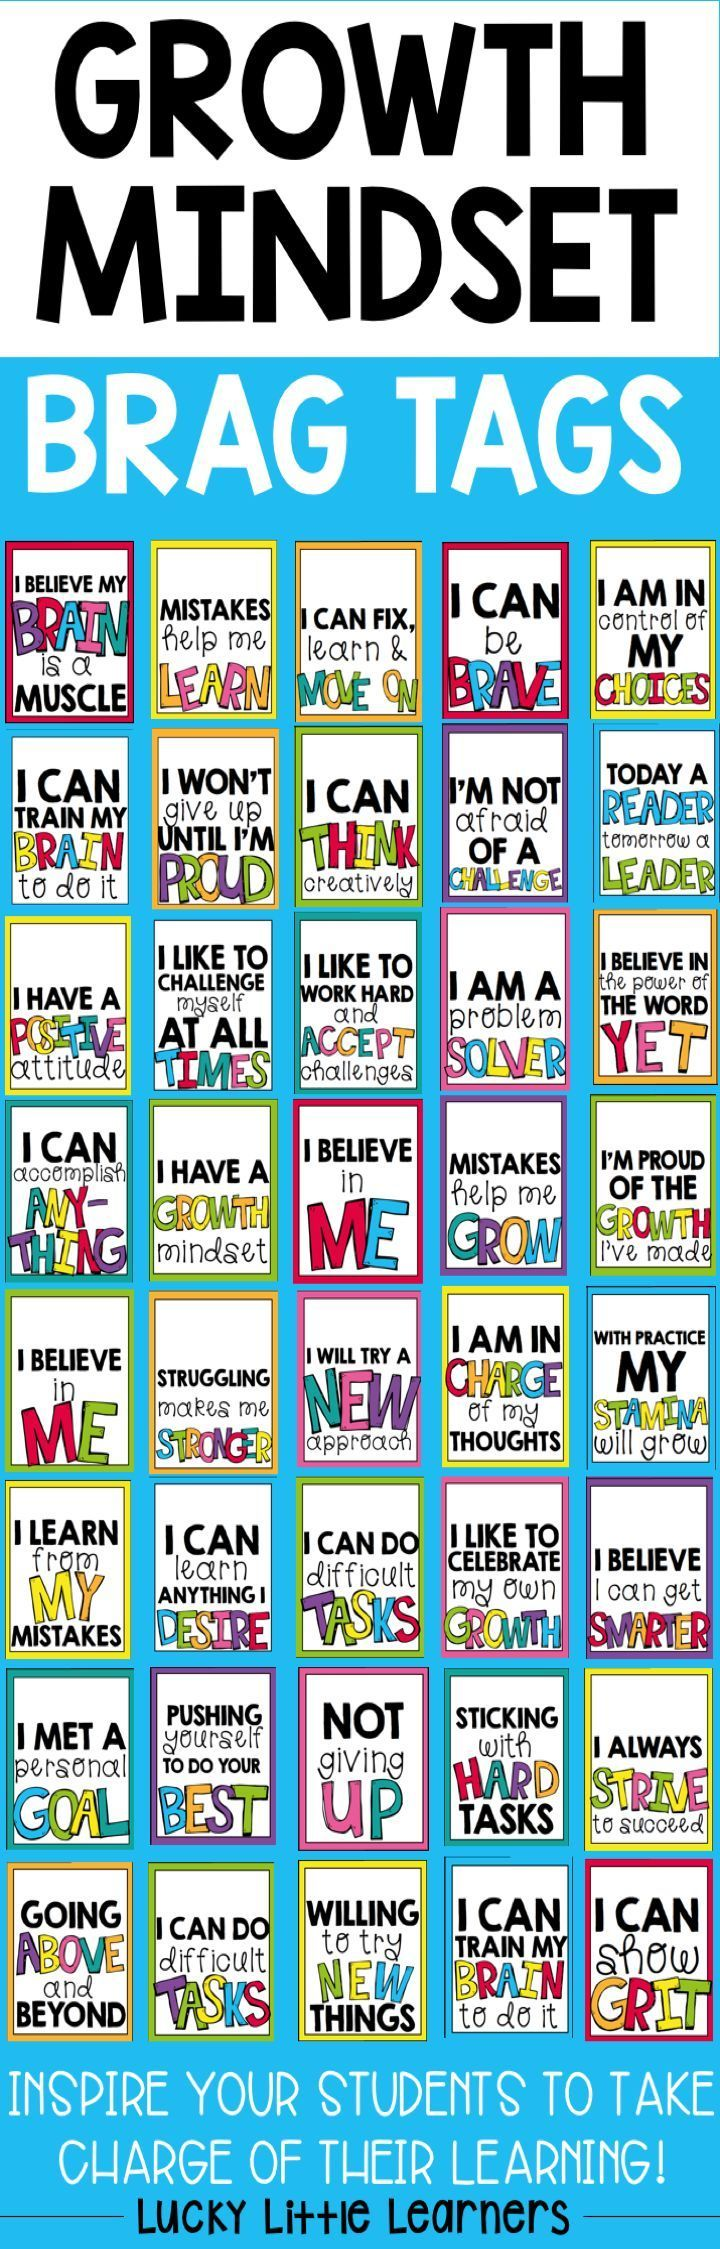 Inspire your students to take charge of their learning with these growth mindset brag tag incentives. Brag tags included: -Willing To Try New Things -Sticking With Hard Tasks -Not Giving Up -Pushing Yourself To Do Your Best -Going Above And Beyond -I Believe In Me -I Can Learn Anything I Desire -I Learn From My Mistakes -I Can Accomplish Anything -I Can Do Difficult Tasks -I Am In Charge Of My Thoughts -I Like To Celebrate My Own Growth -I Like To Challenge Myself At All Times -I Have A G...